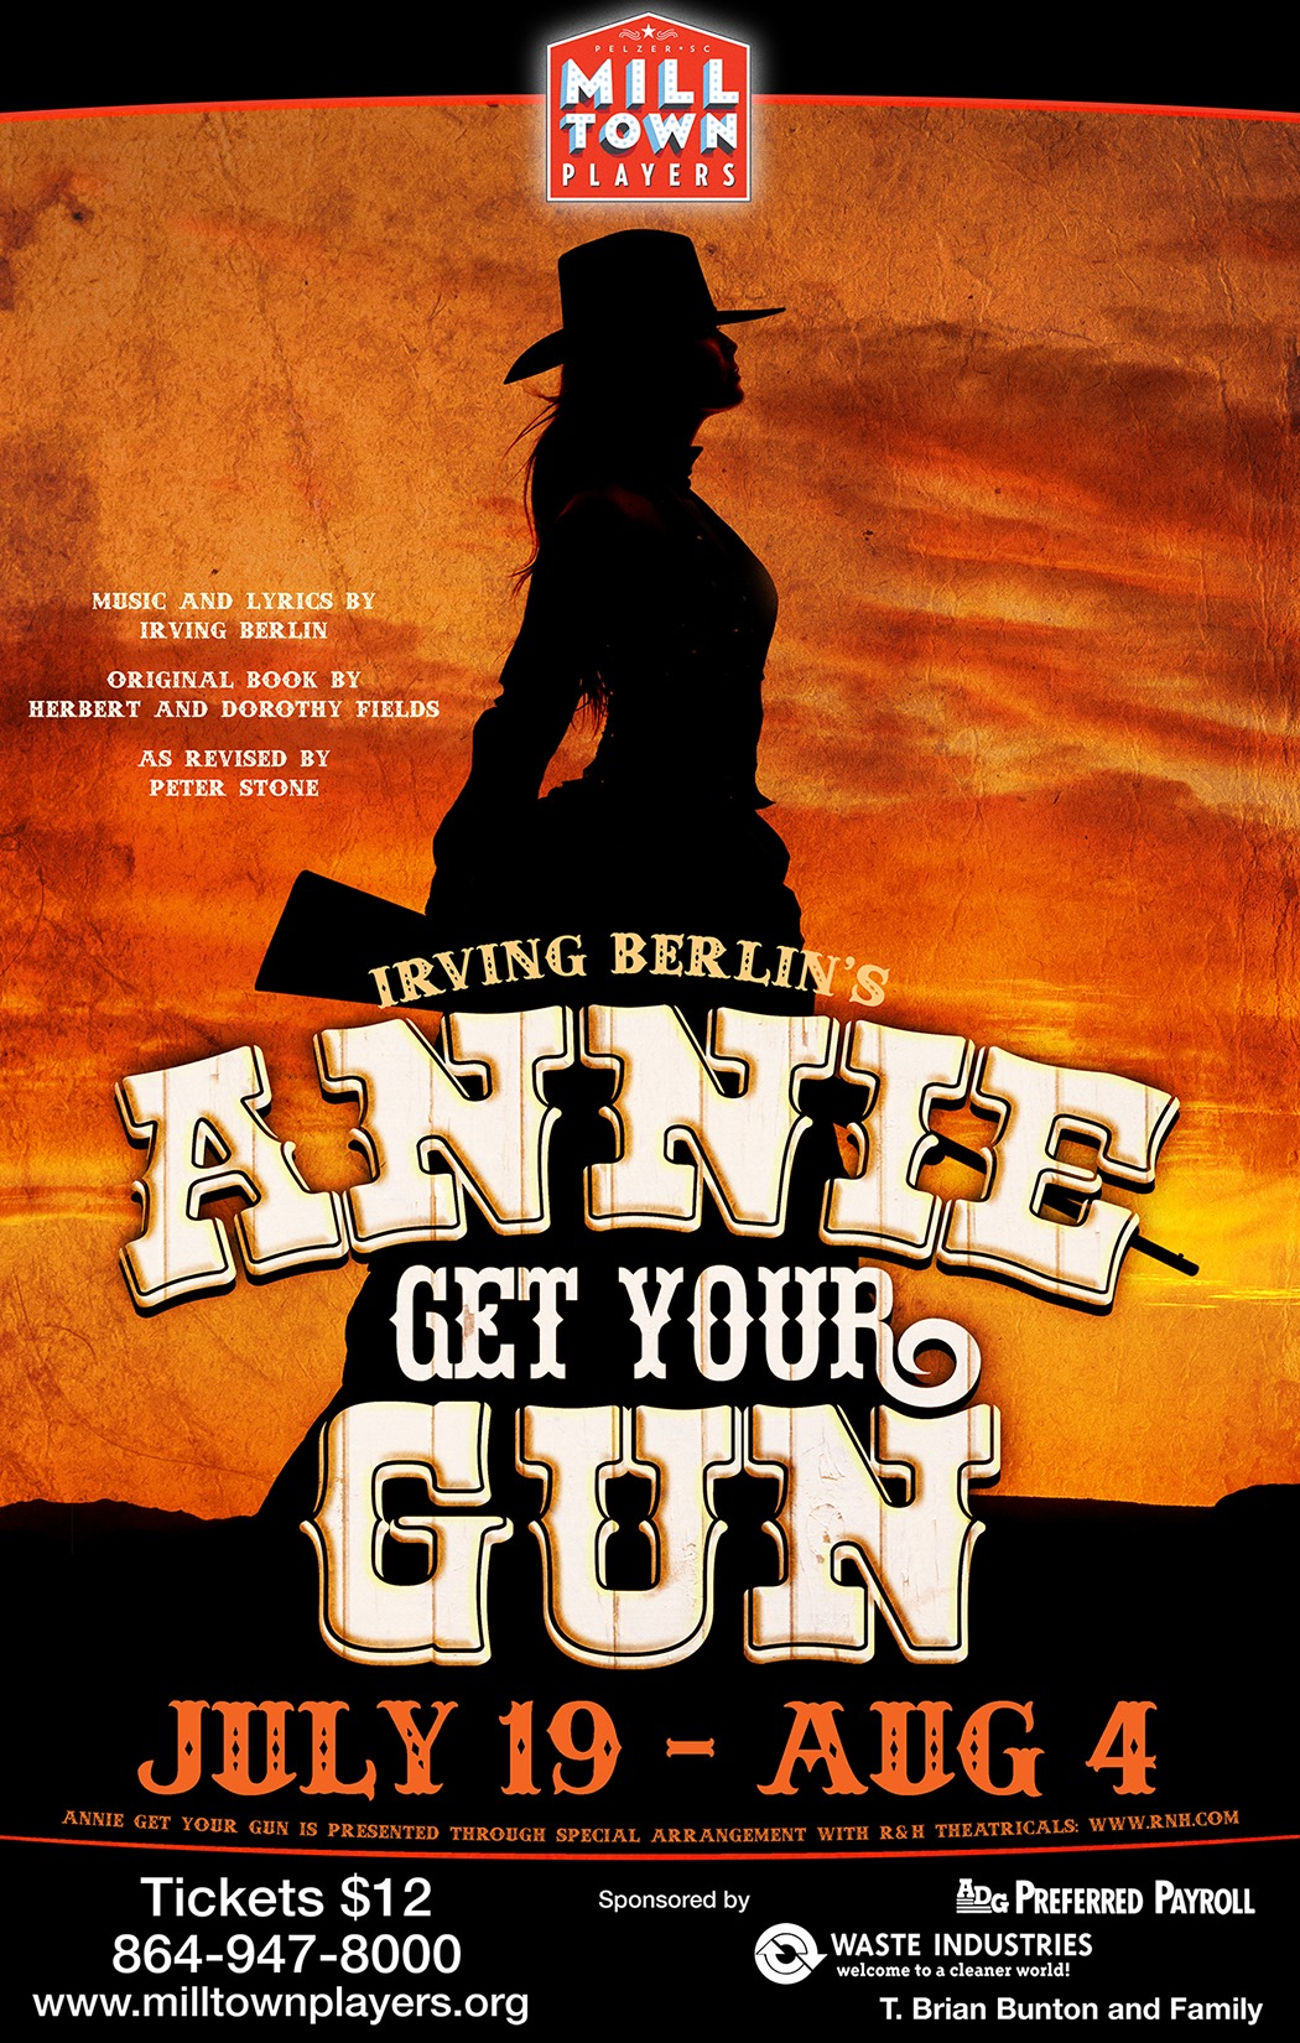 BWW Interview: Lauren Imhoff, Director of ANNIE GET YOUR GUN at Mill Town Players